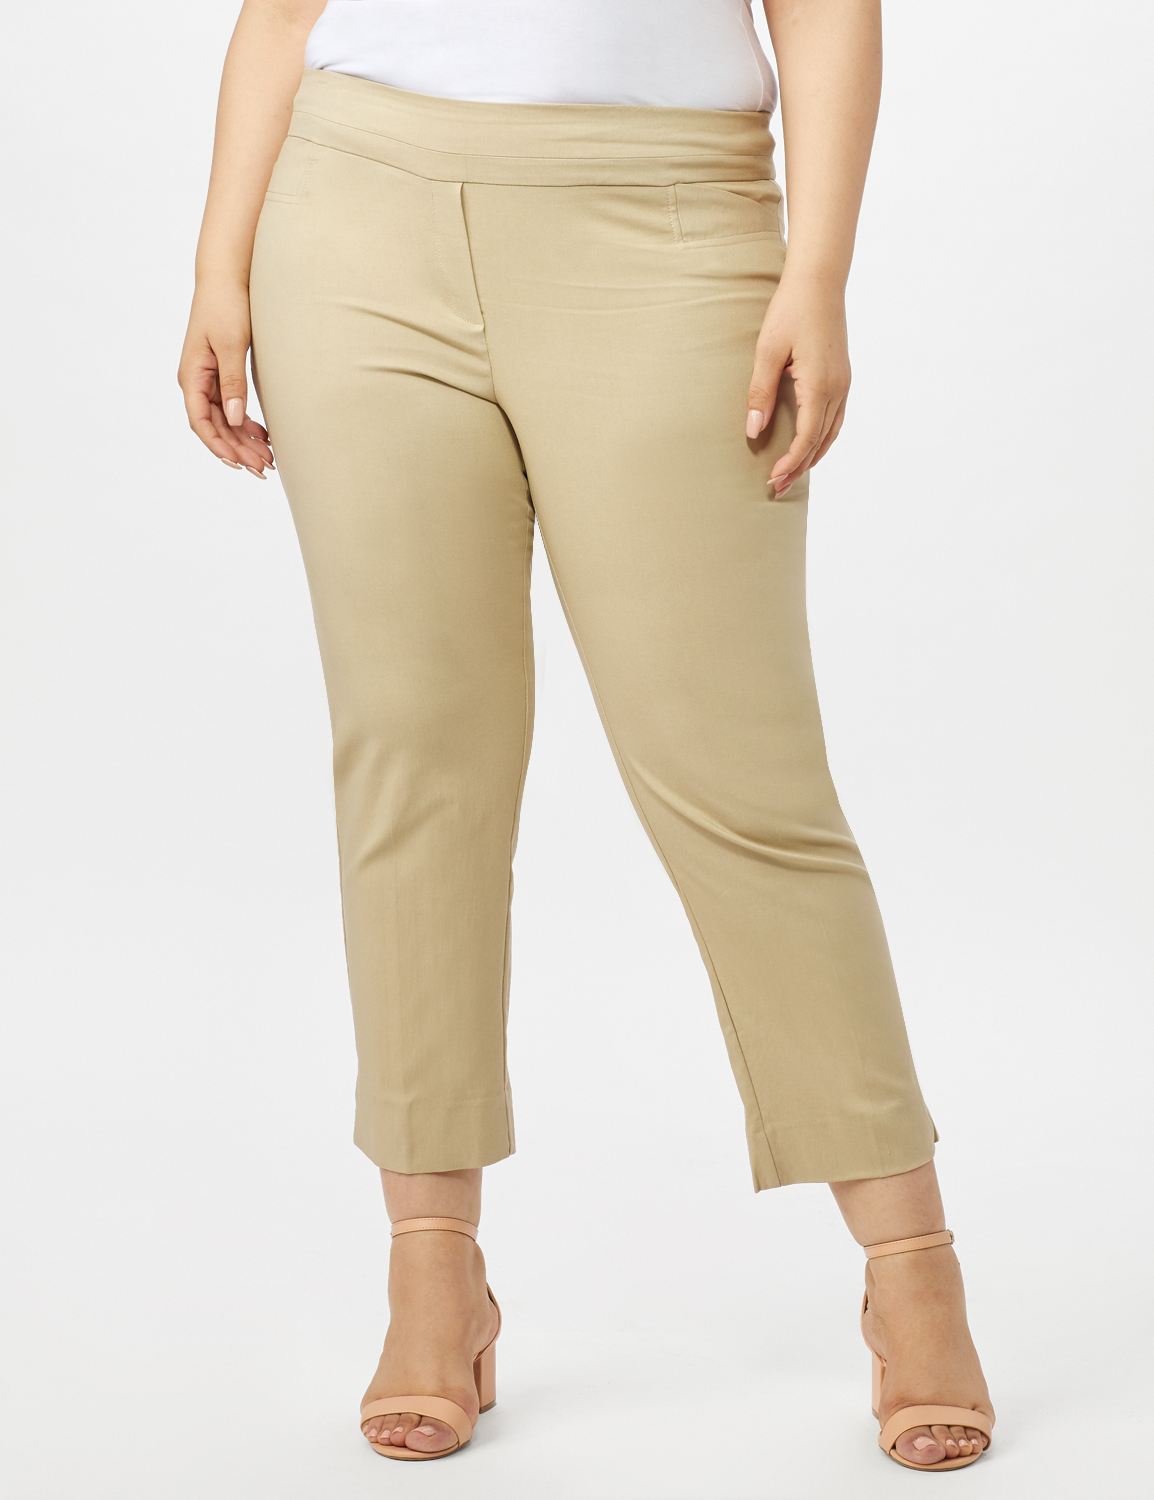 Plus - L-Pocket Pull-On Crop Pants -Chino - Front